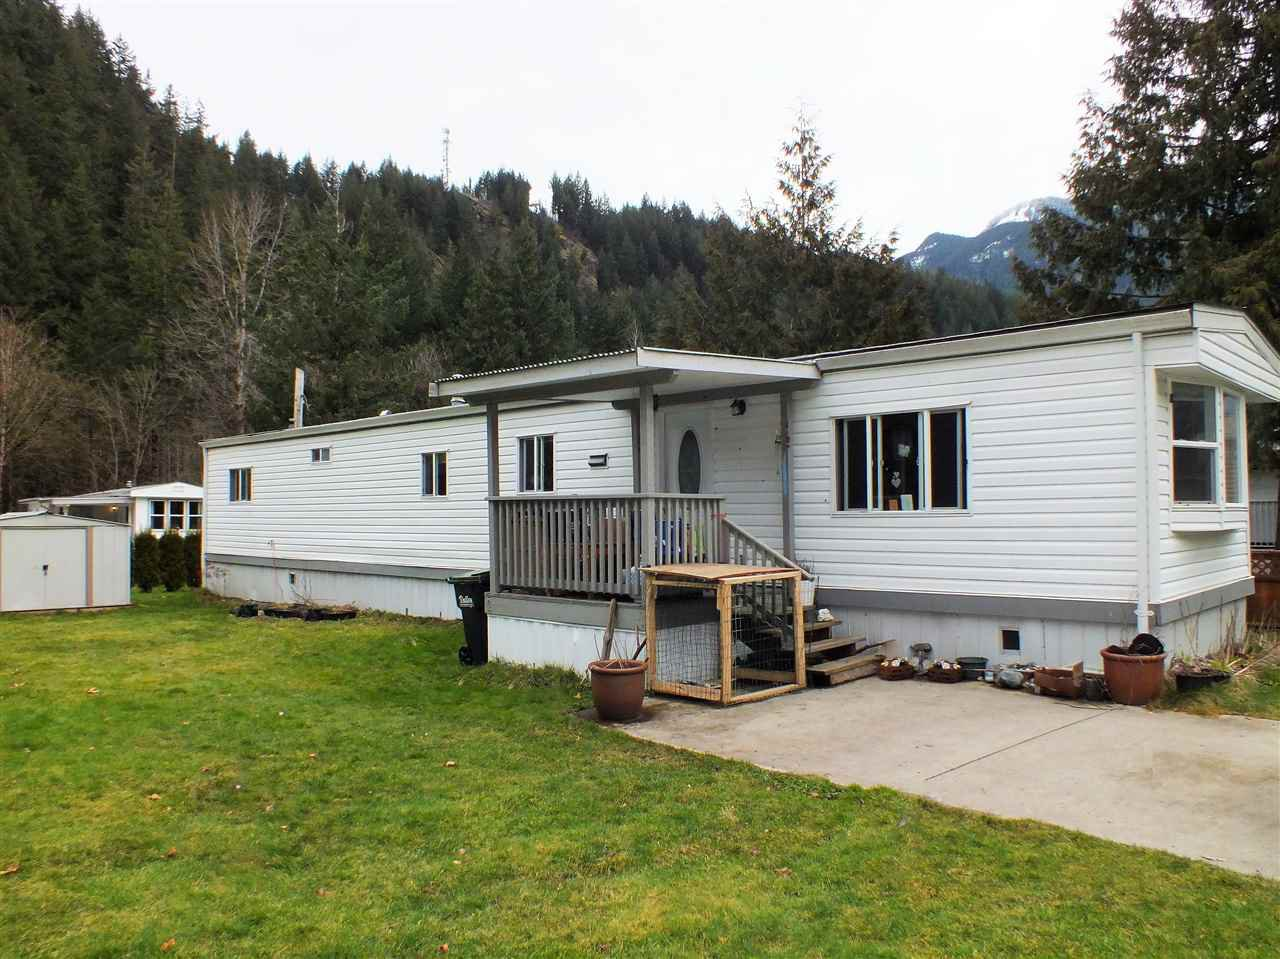 "Main Photo: 3A 65367 KAWKAWA LAKE Road in Hope: Hope Kawkawa Lake Manufactured Home for sale in ""CRYSTAL RIVER COURT"" : MLS®# R2474318"